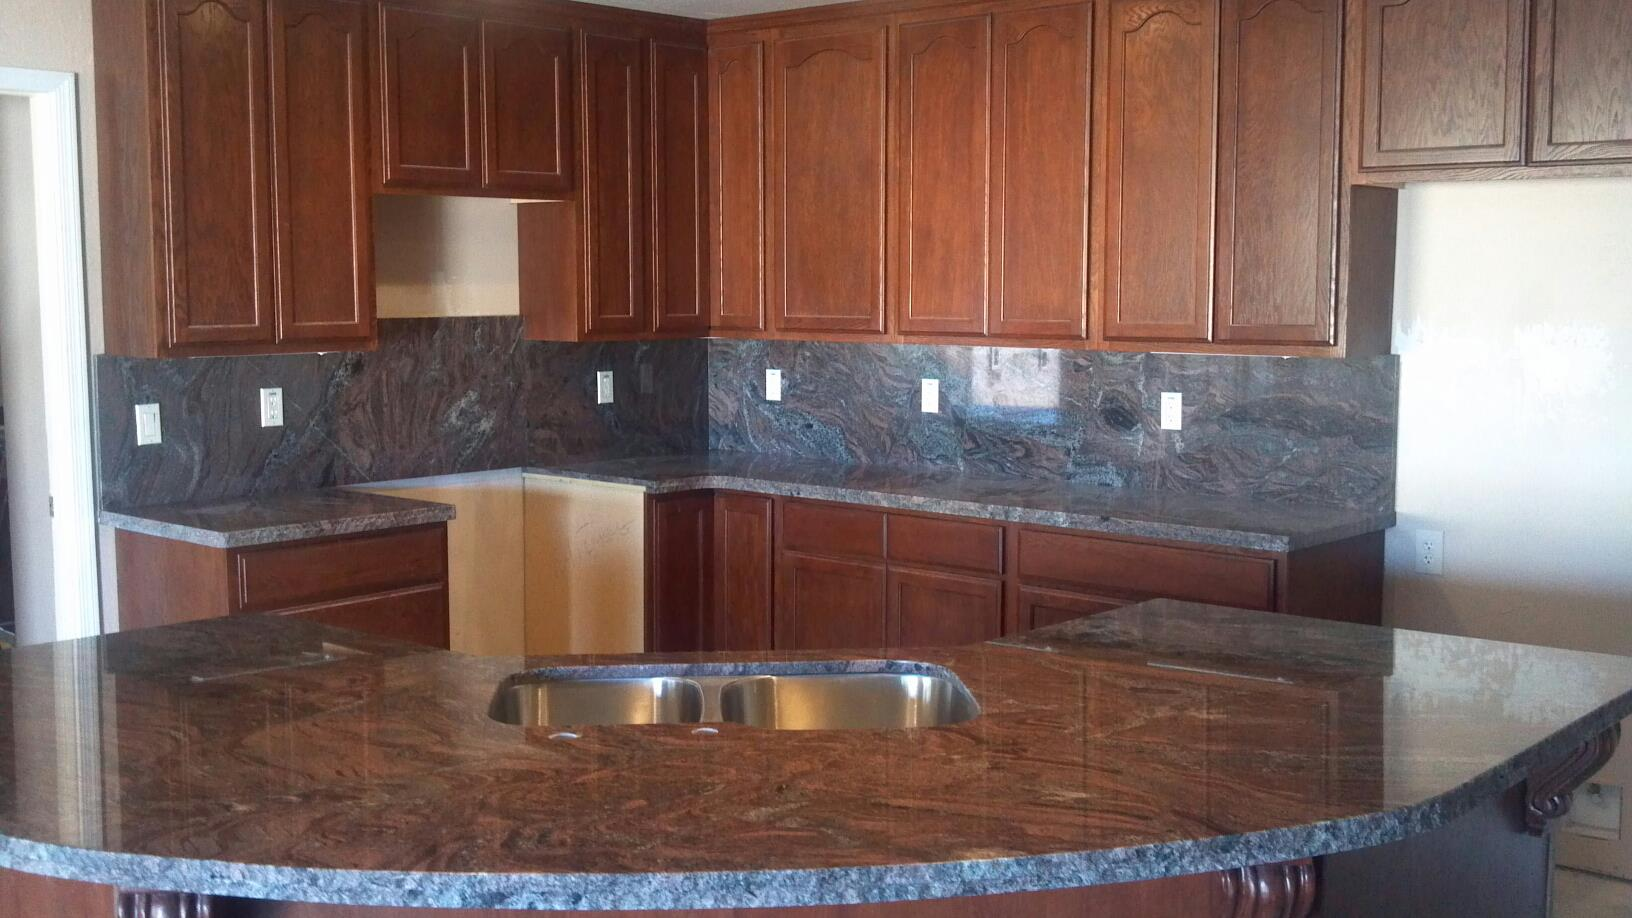 Desert stone concepts home decorating resources home for Kitchen cupboards and countertops